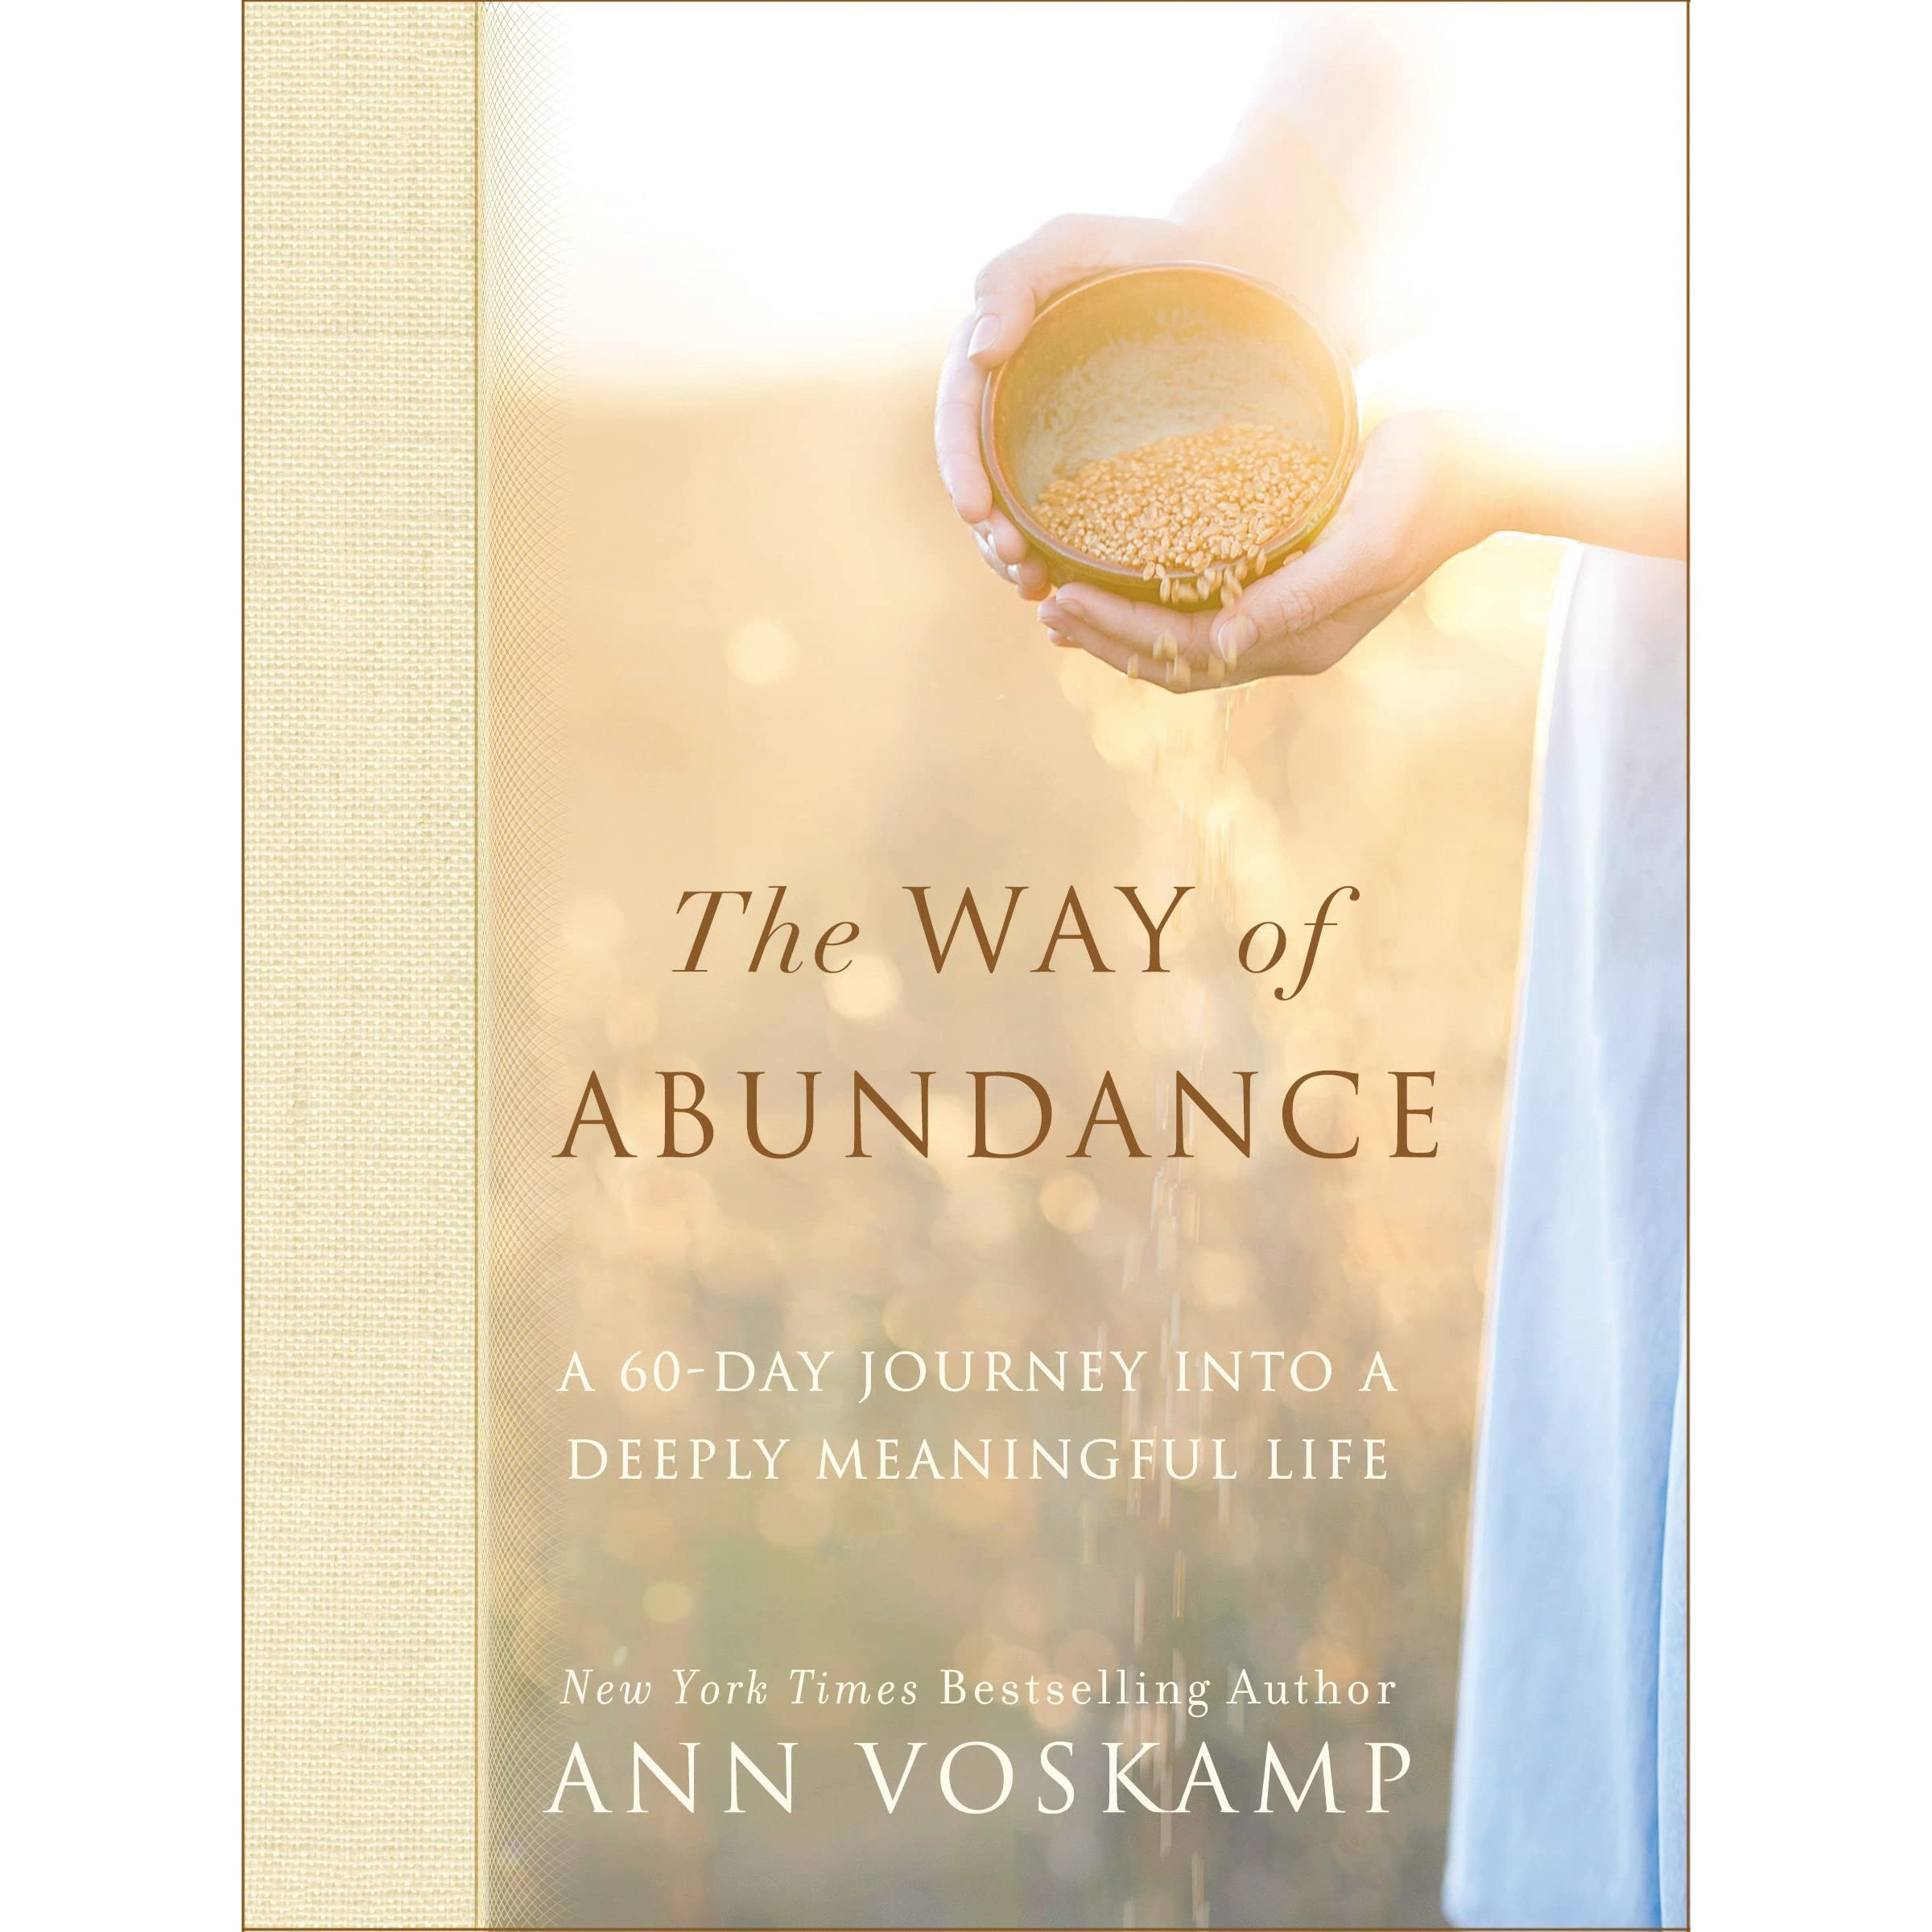 The Way of Abundance: A 60-Day Journey into a Deeply